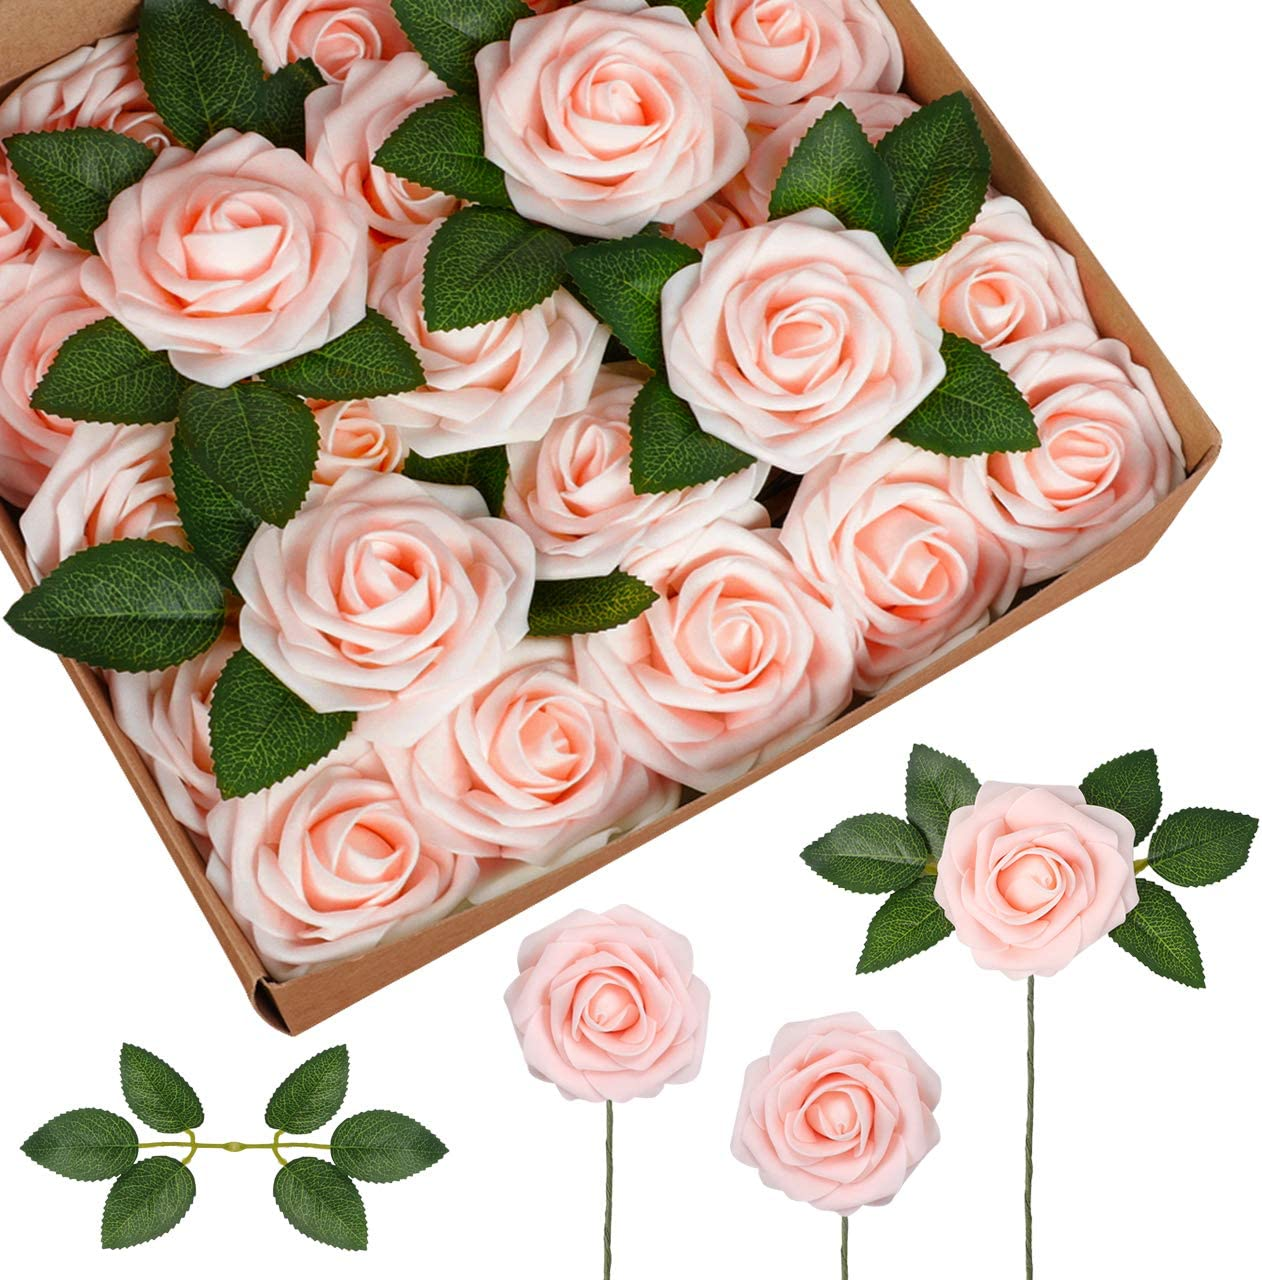 InnoGear Artificial Flowers, 50 Pcs Faux Flowers Fake Flowers Blush Roses Perfect for DIY Wedding Bouquets Centerpieces Bridal Shower Party Home Flower Arrangement Decorations